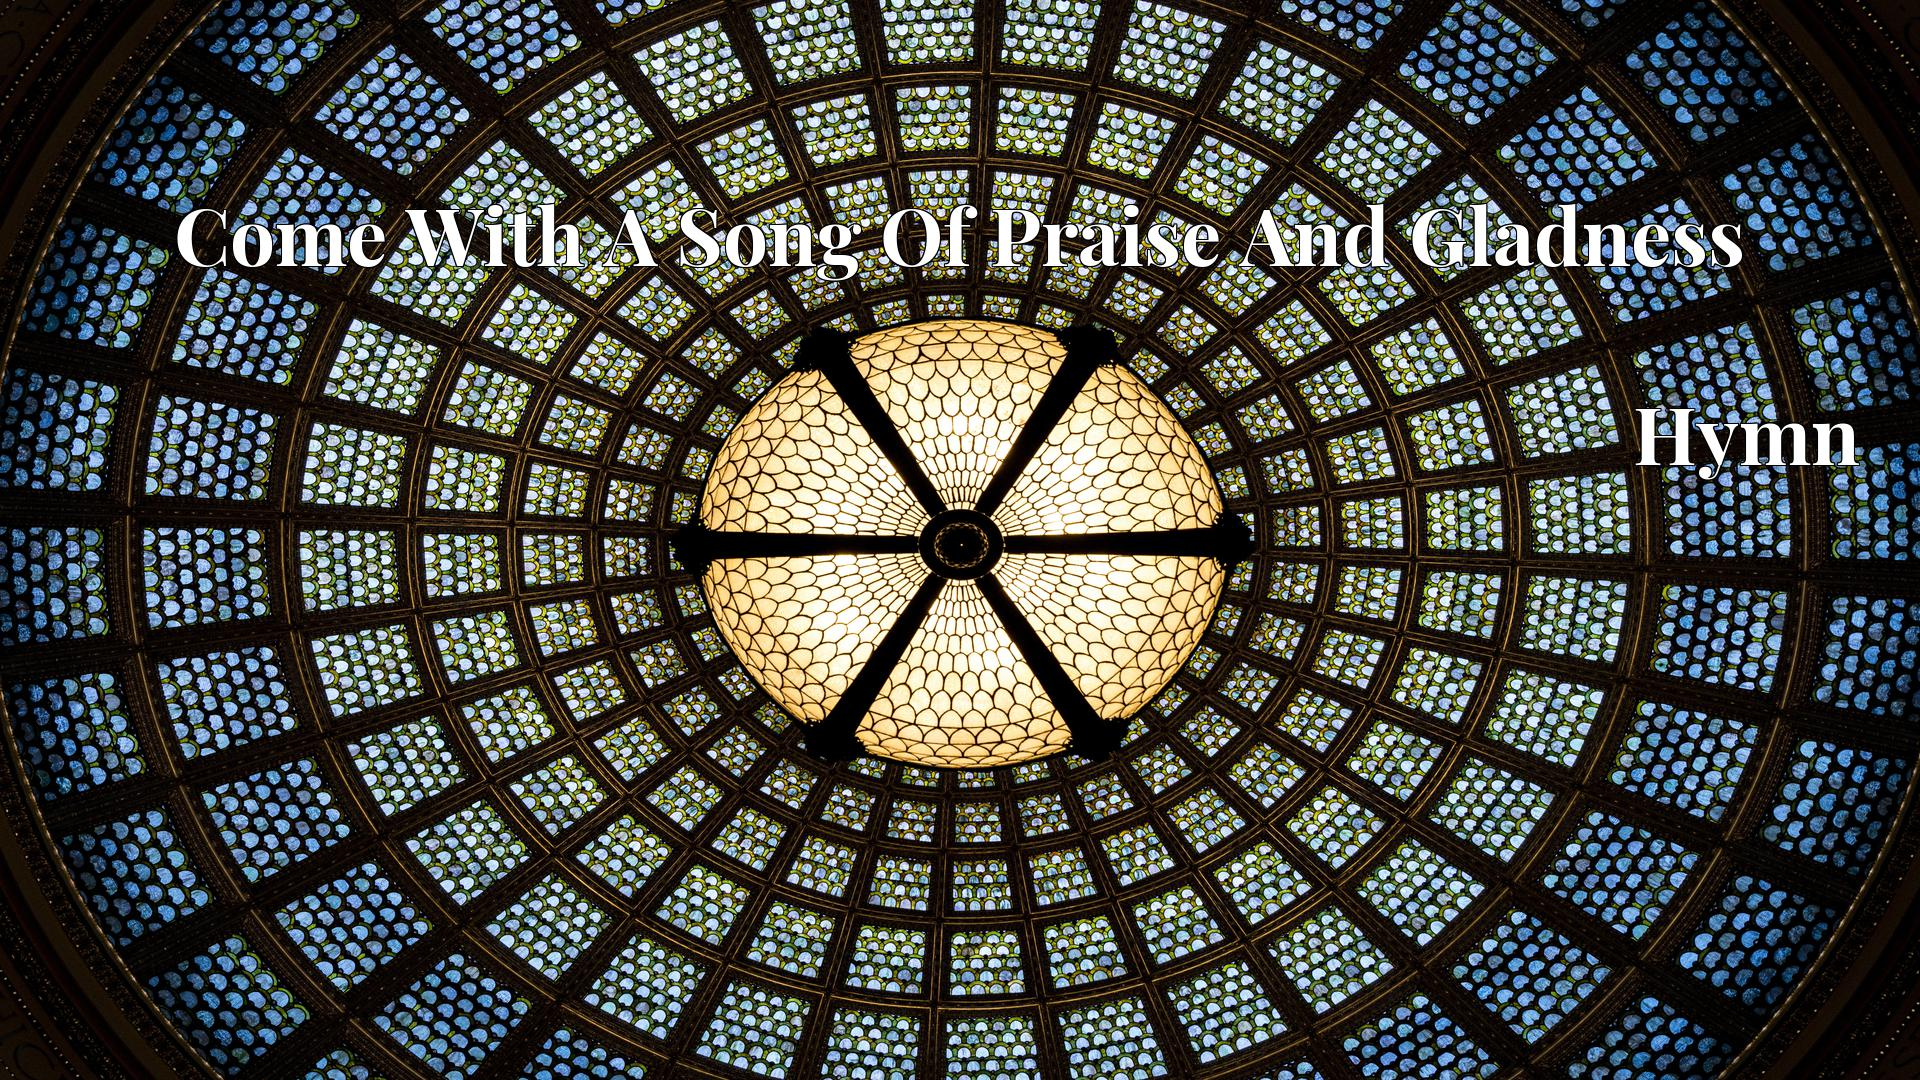 Come With A Song Of Praise And Gladness - Hymn